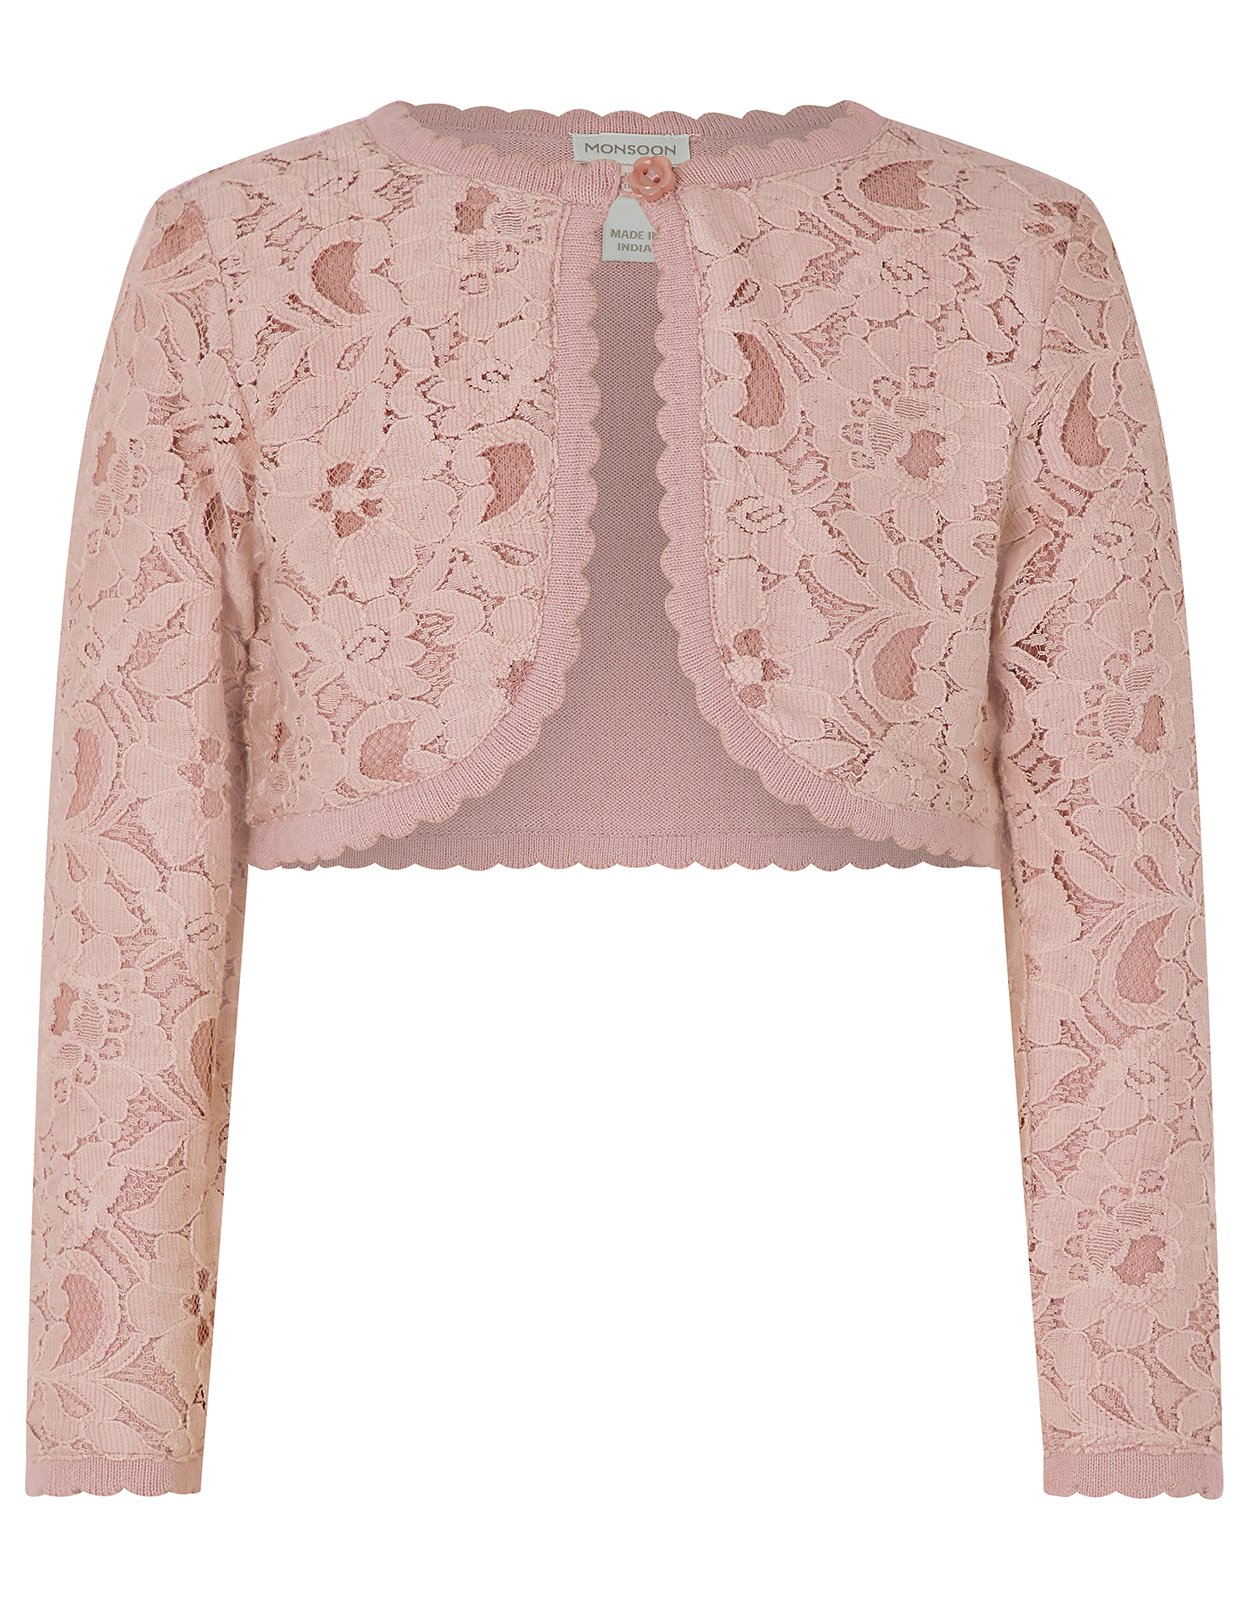 Monsoon Eliona cropped lace cardigan